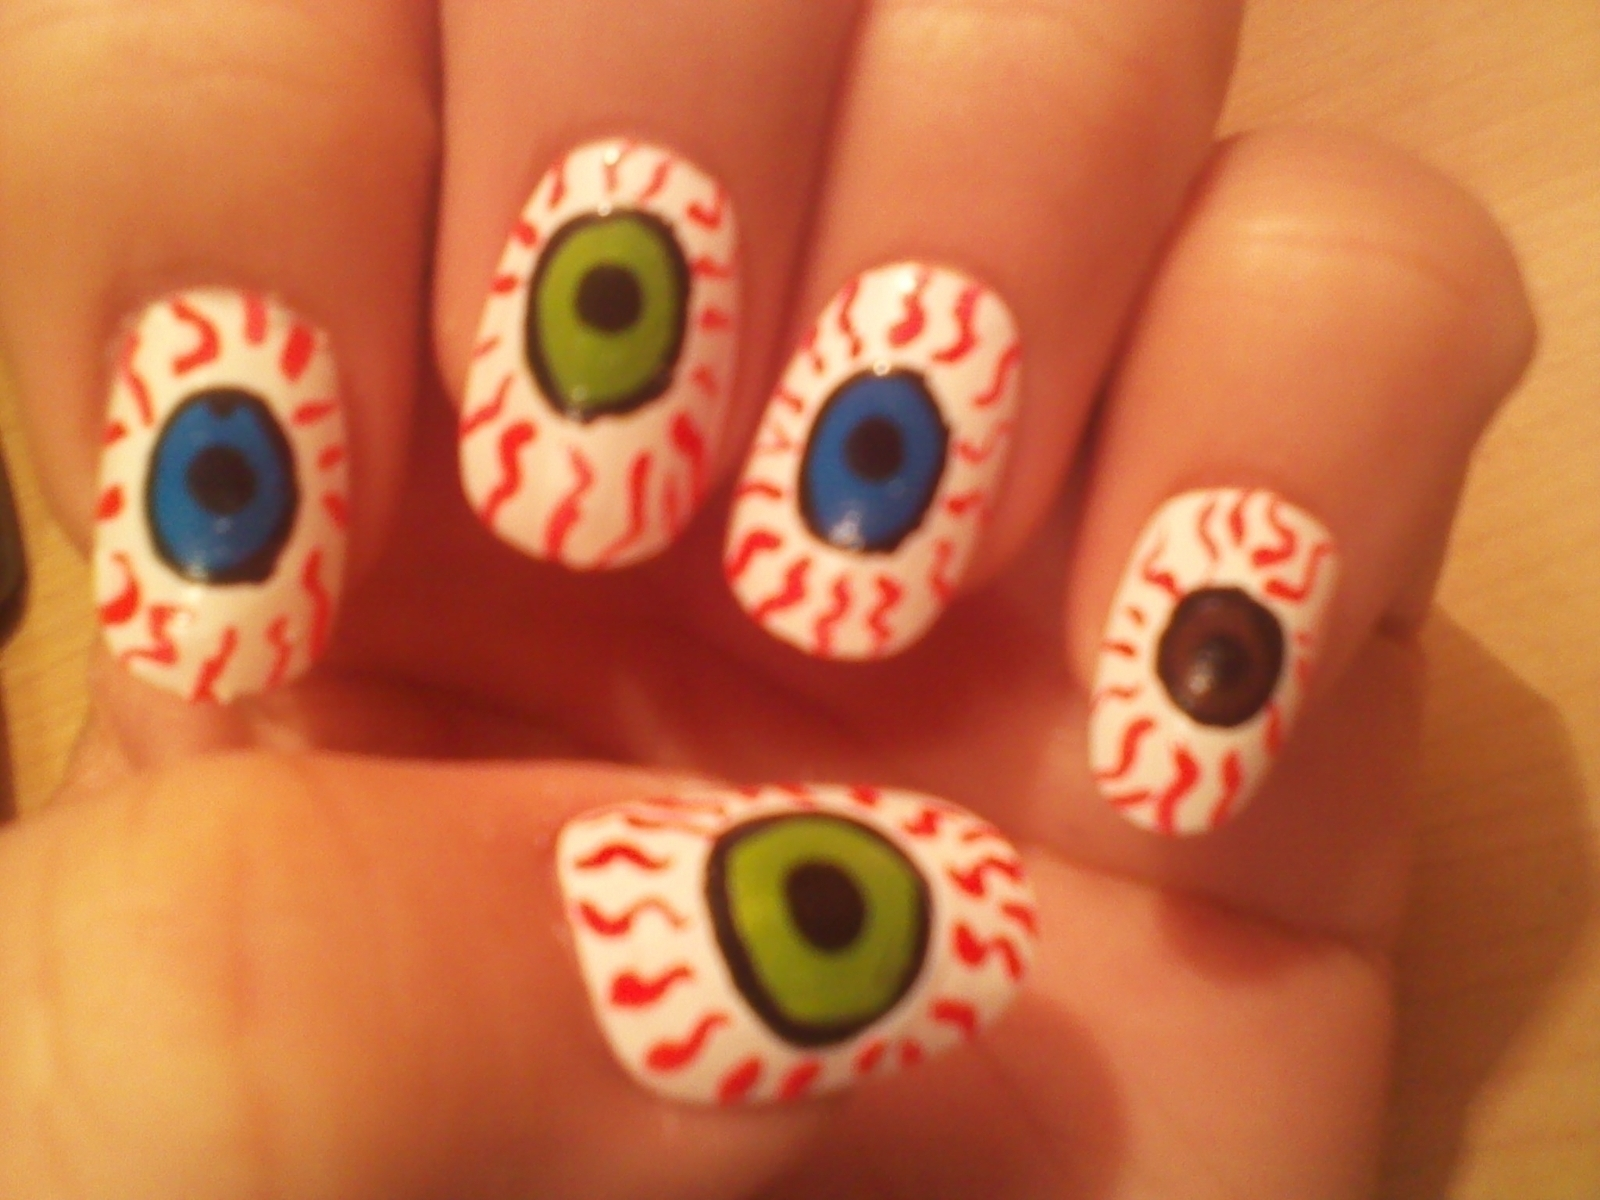 Eyeball Nail Art · How To Paint A Themed Nail Manicure · Nail ...